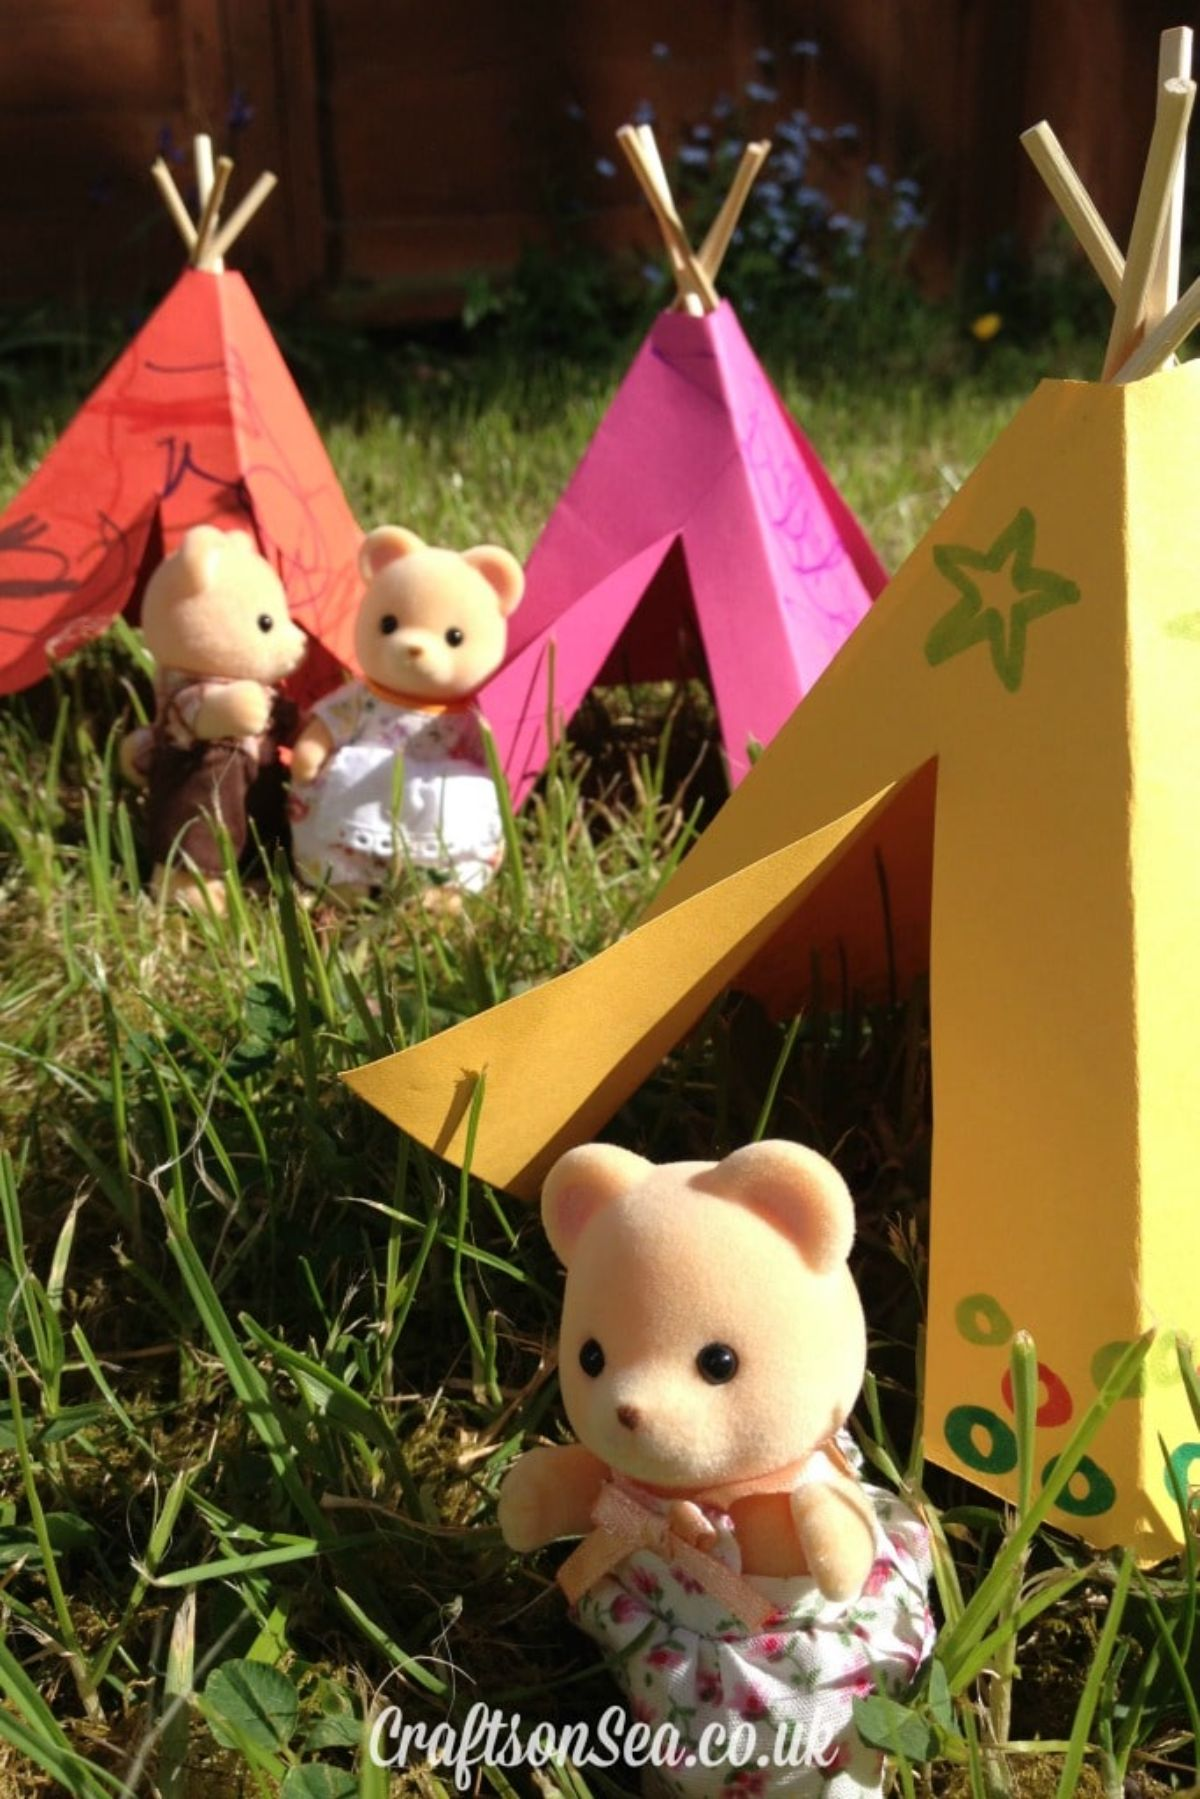 A patch of grass with 3 paper teepees on it. In front of them are 3 sylvanian family figures